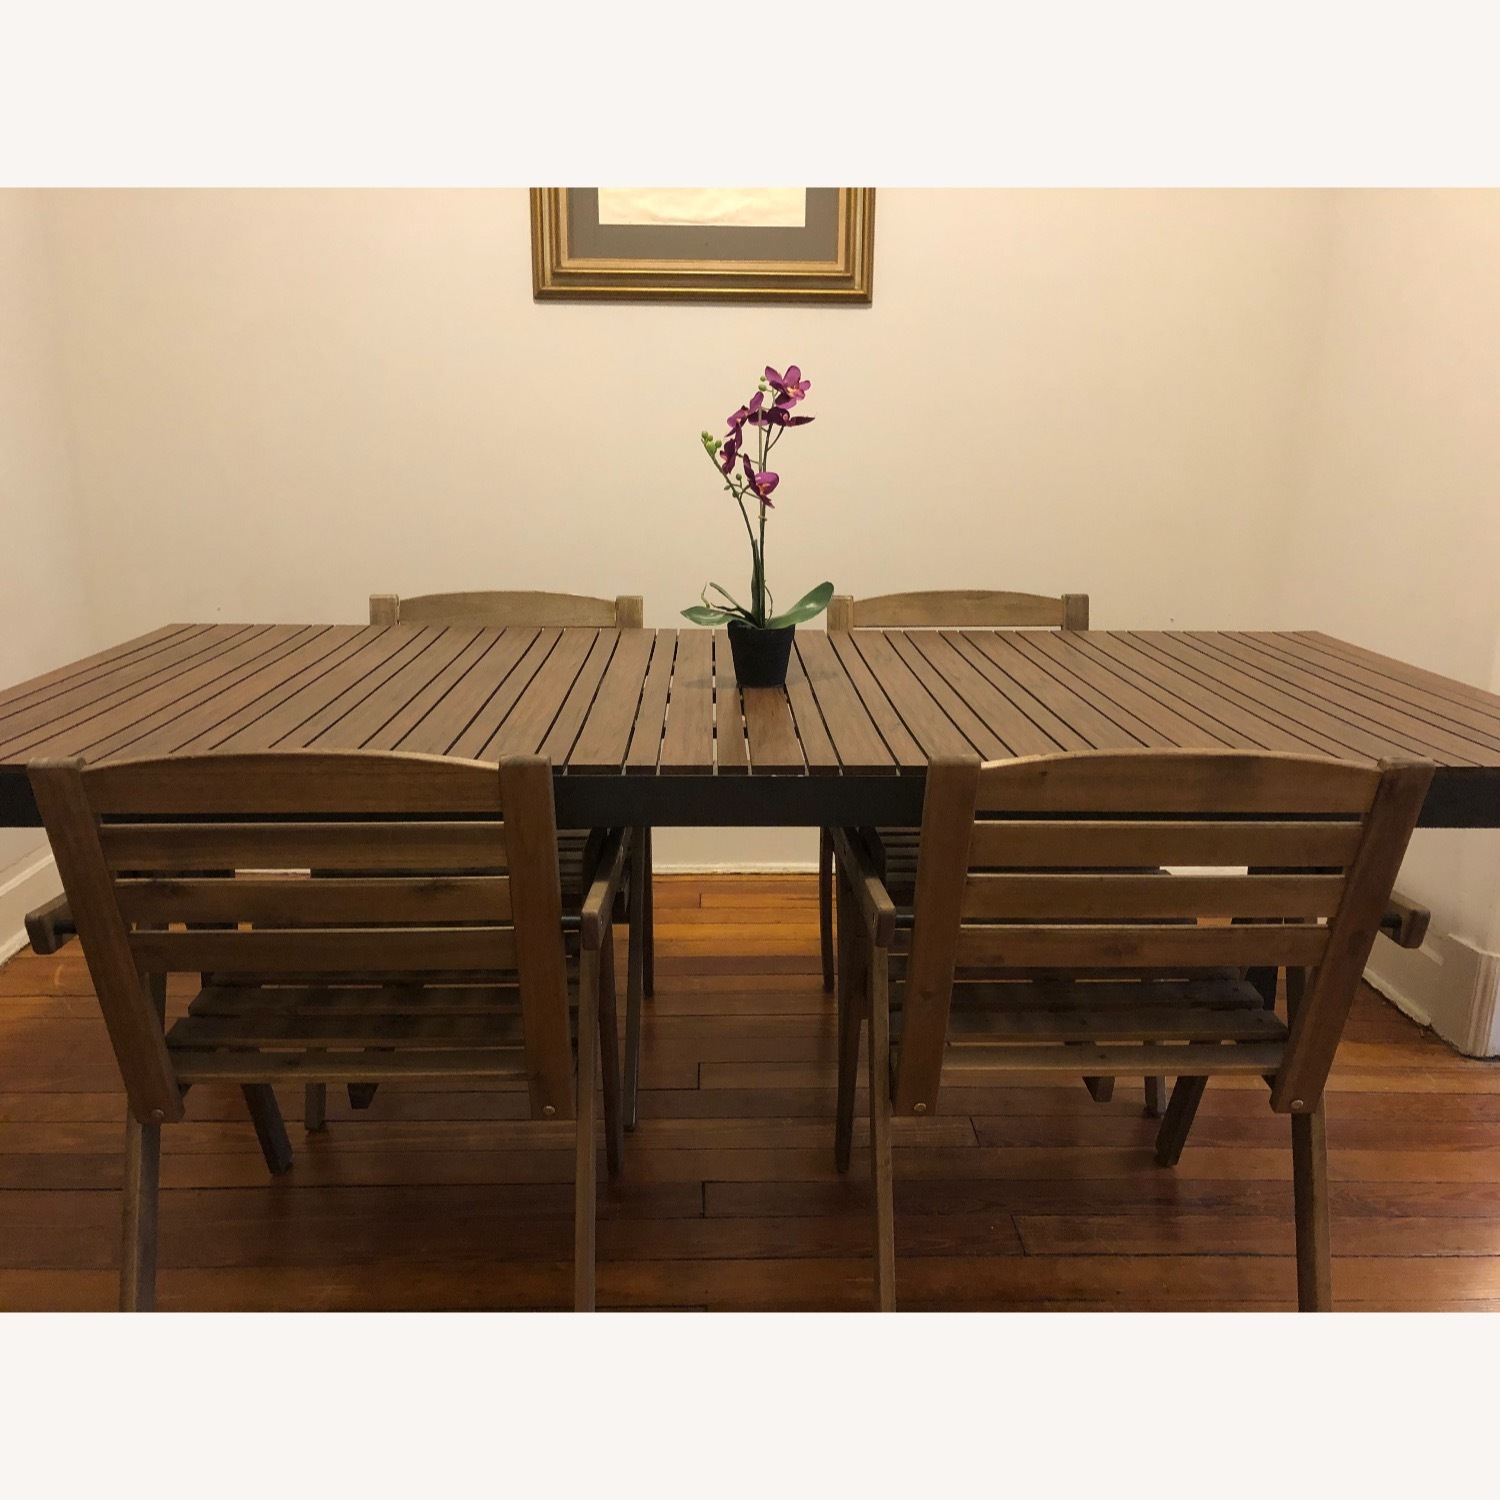 Crate & Barrel Outdoor Rocha Dining Table - image-6